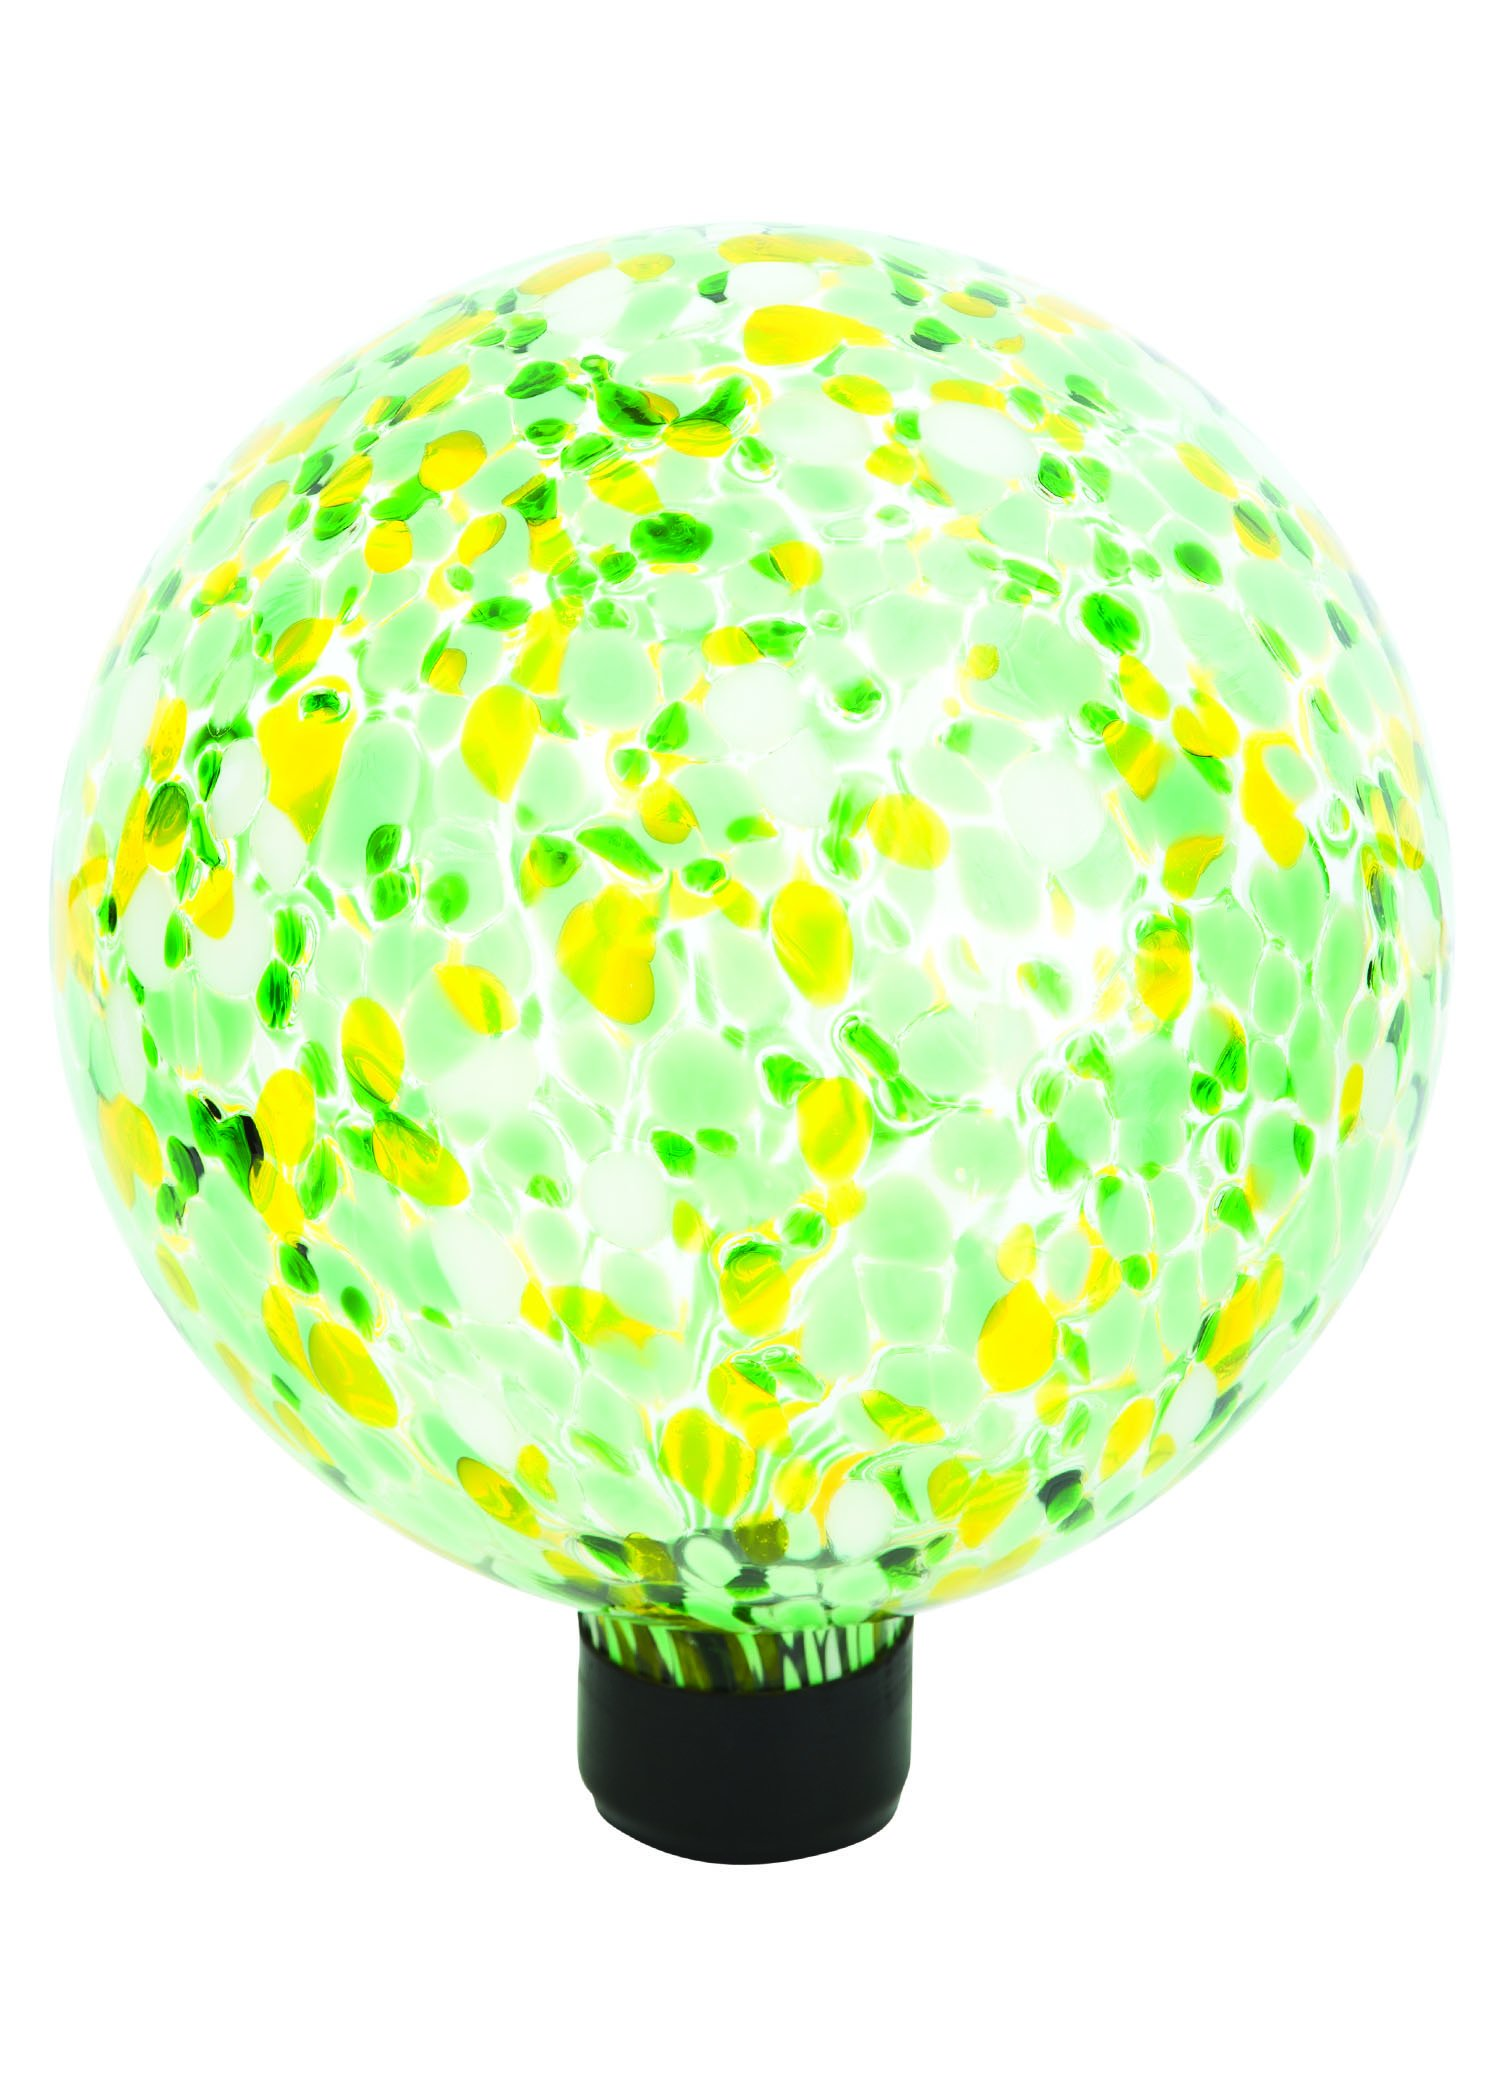 Russco III GD137128 Glass Gazing Ball, 10'', Green Spots